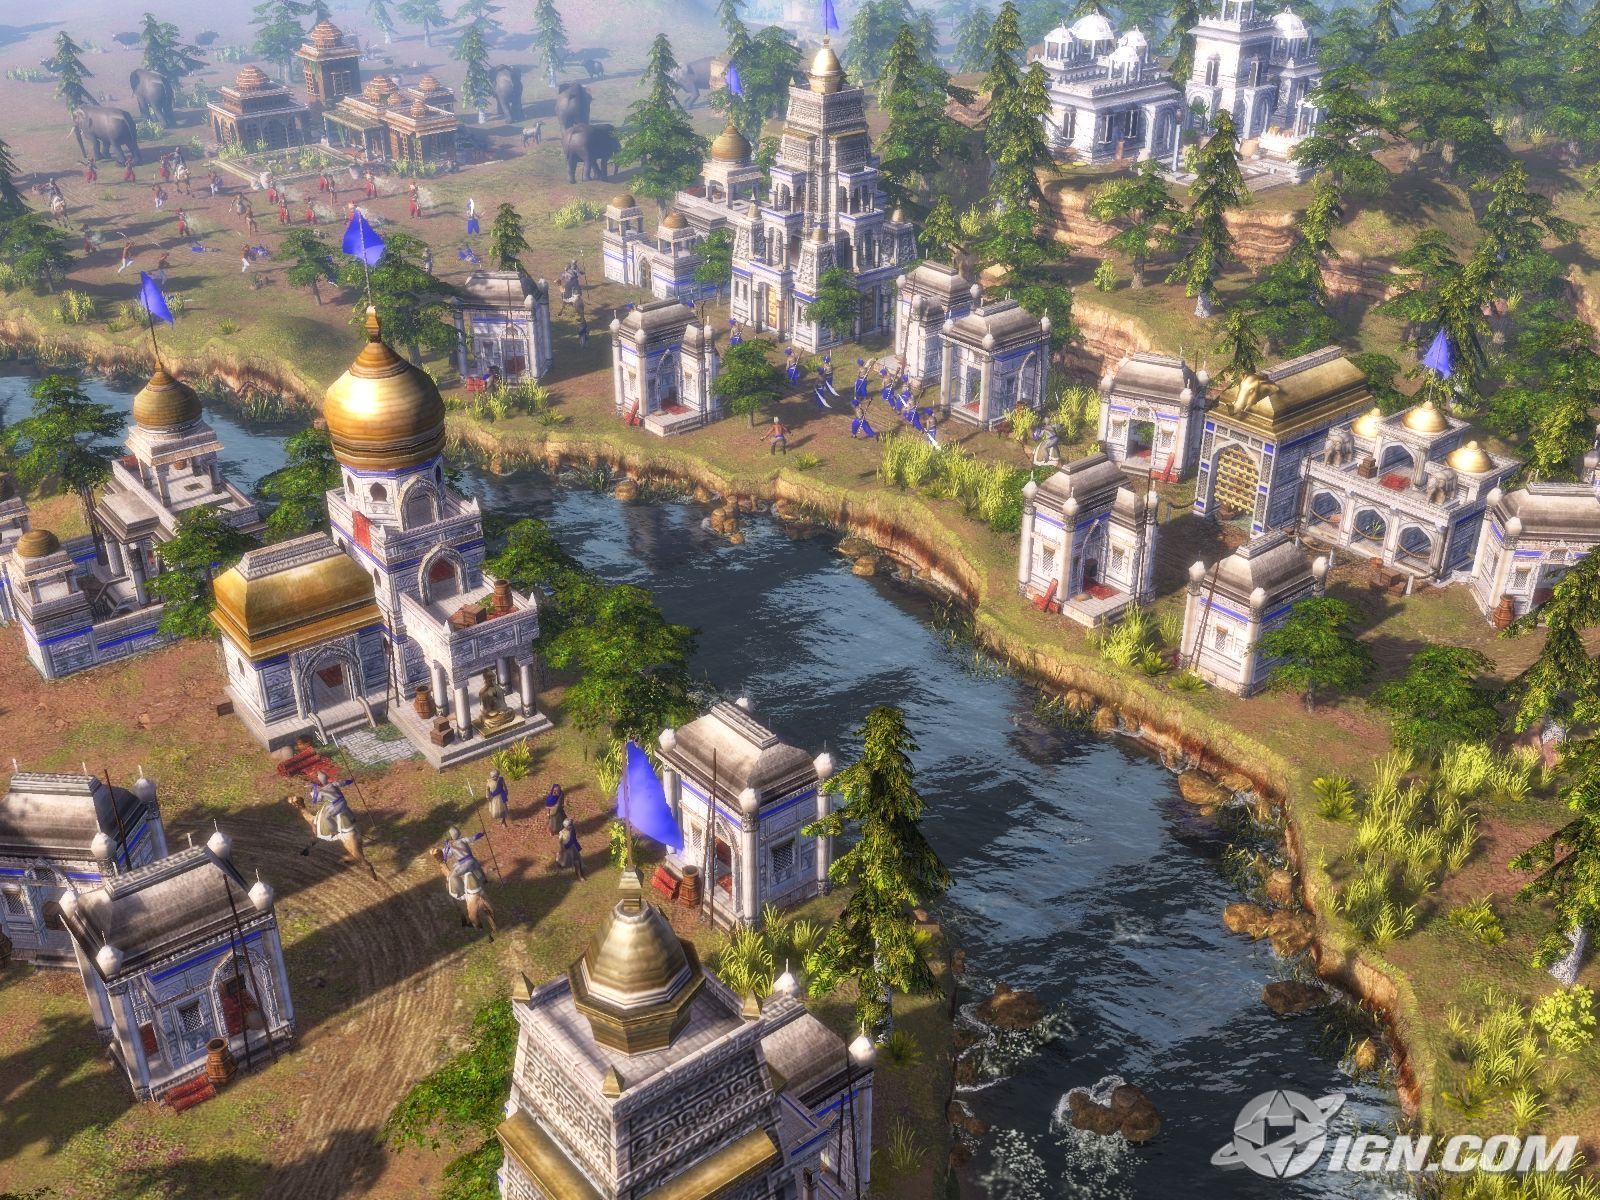 download game age of empires 3 free and chet: download age